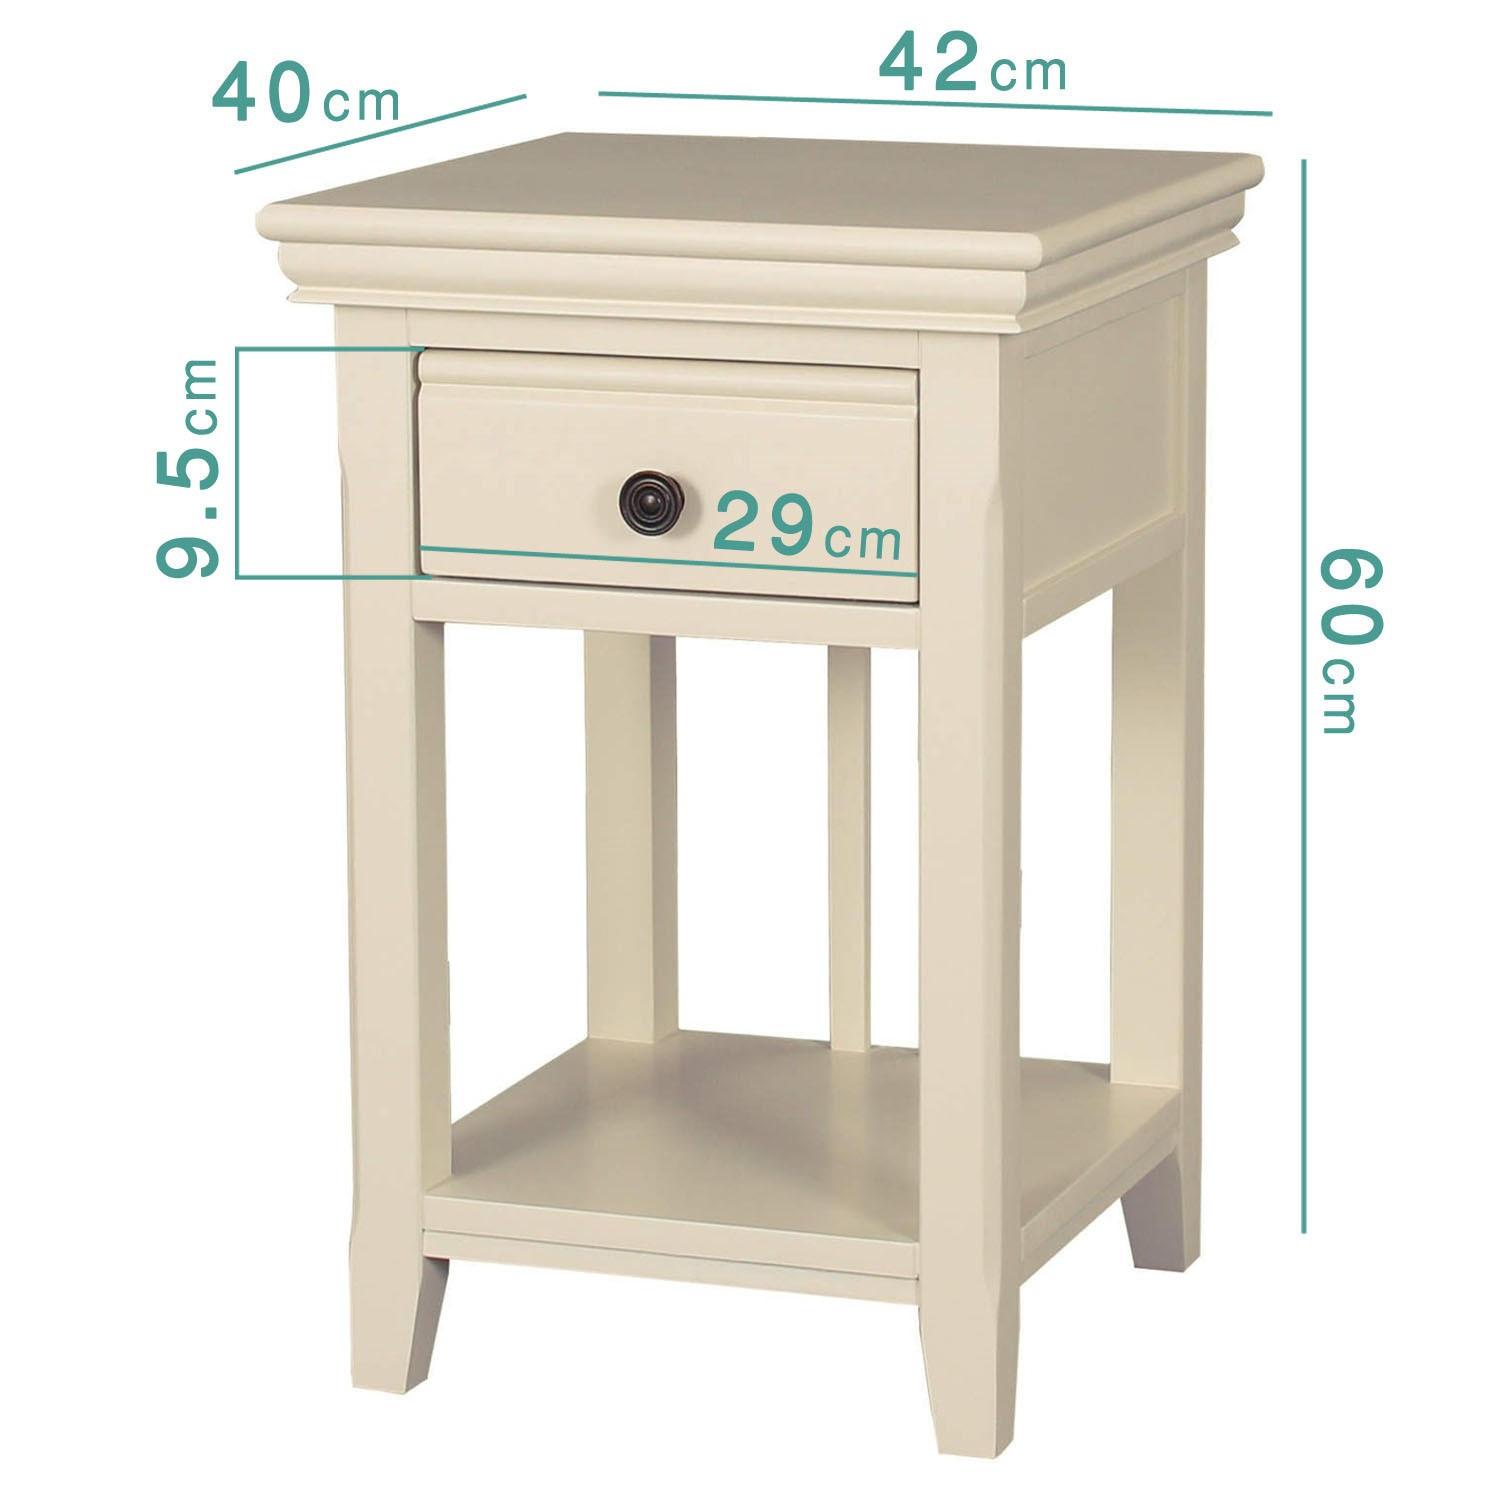 Savannah Bedside Table With Drawer In Ivory Cream Furniture123